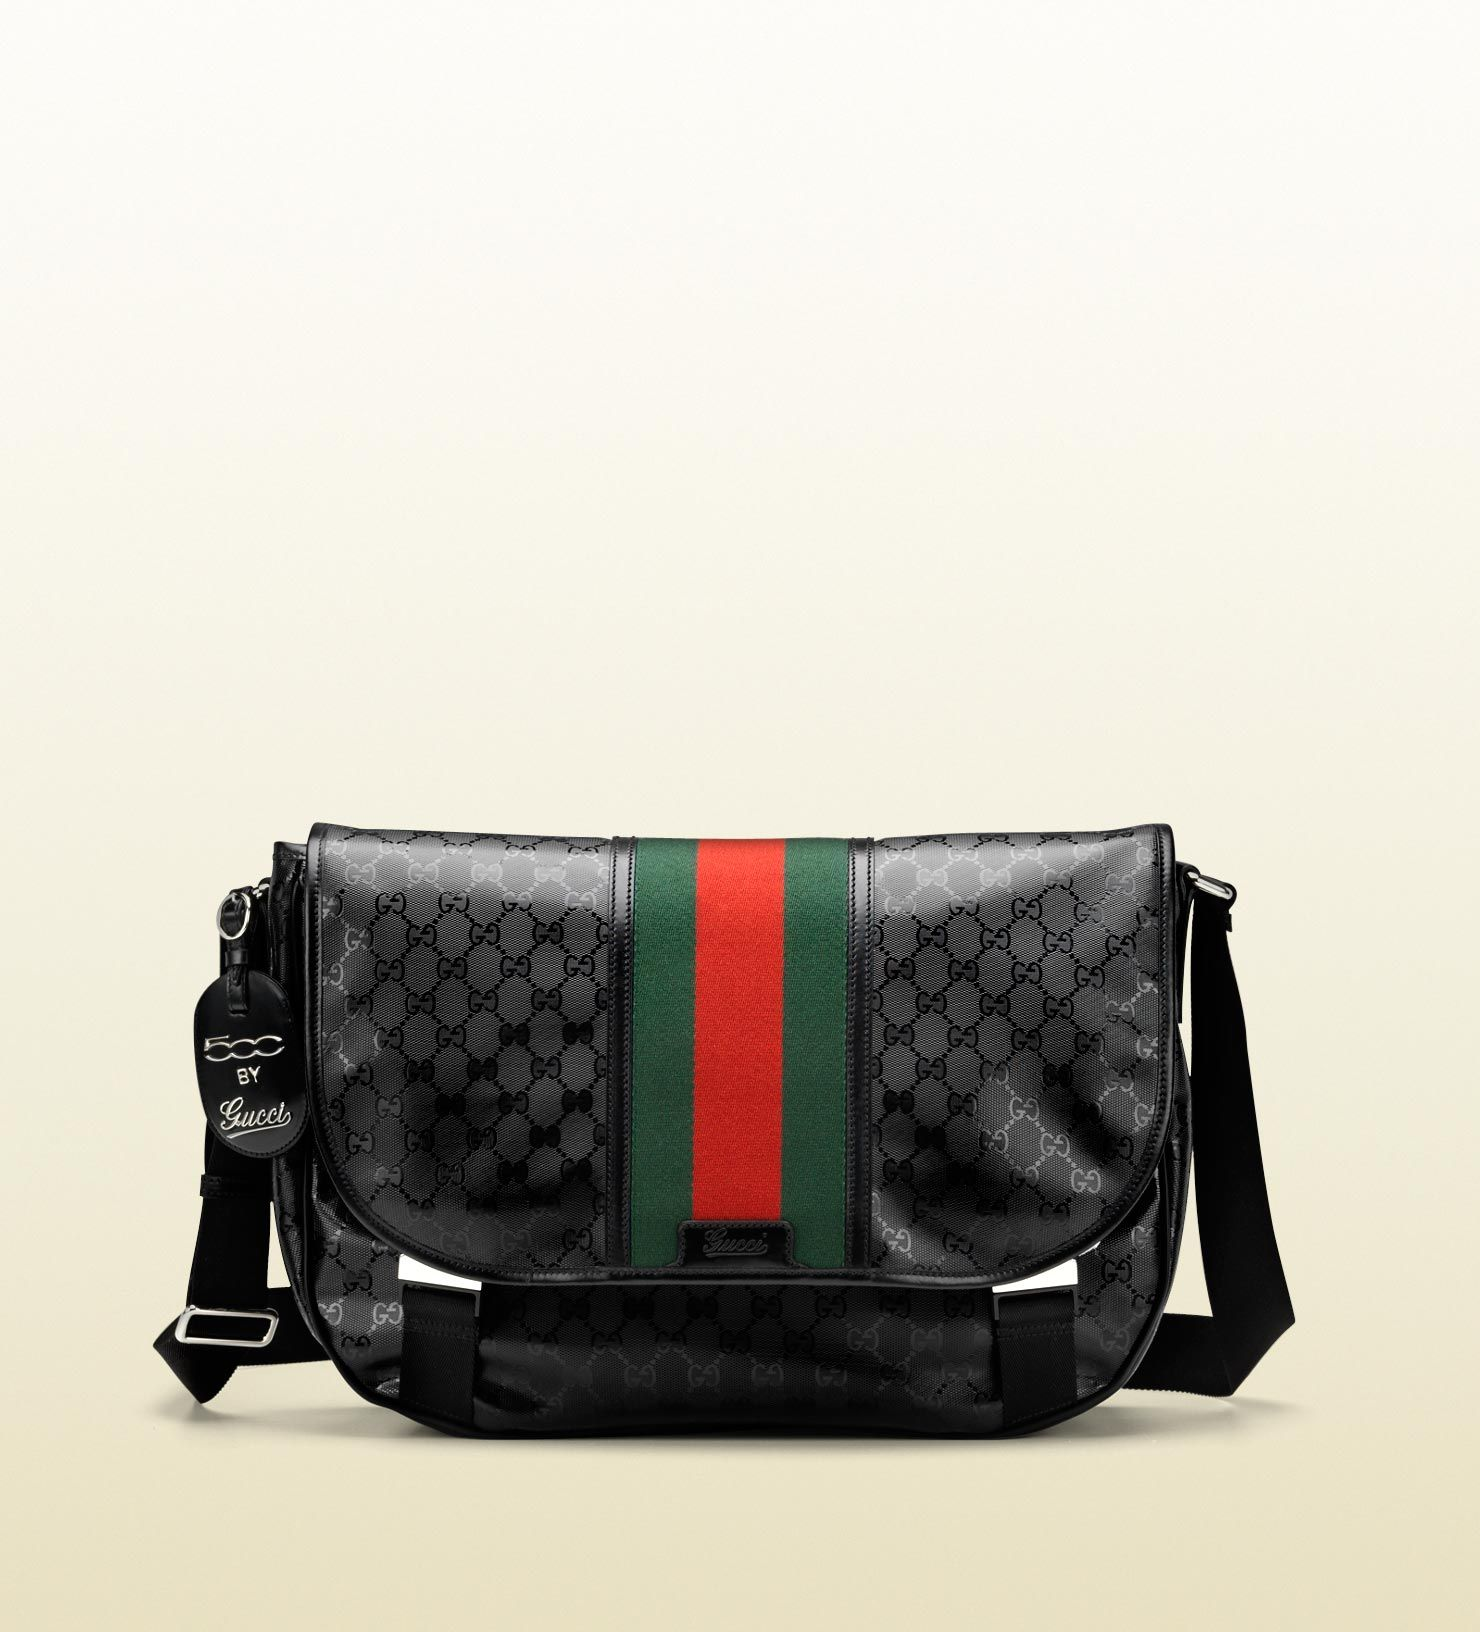 e54dfdab89bb black GG imprimé with green/red/green signature web and black leather trim  $1325